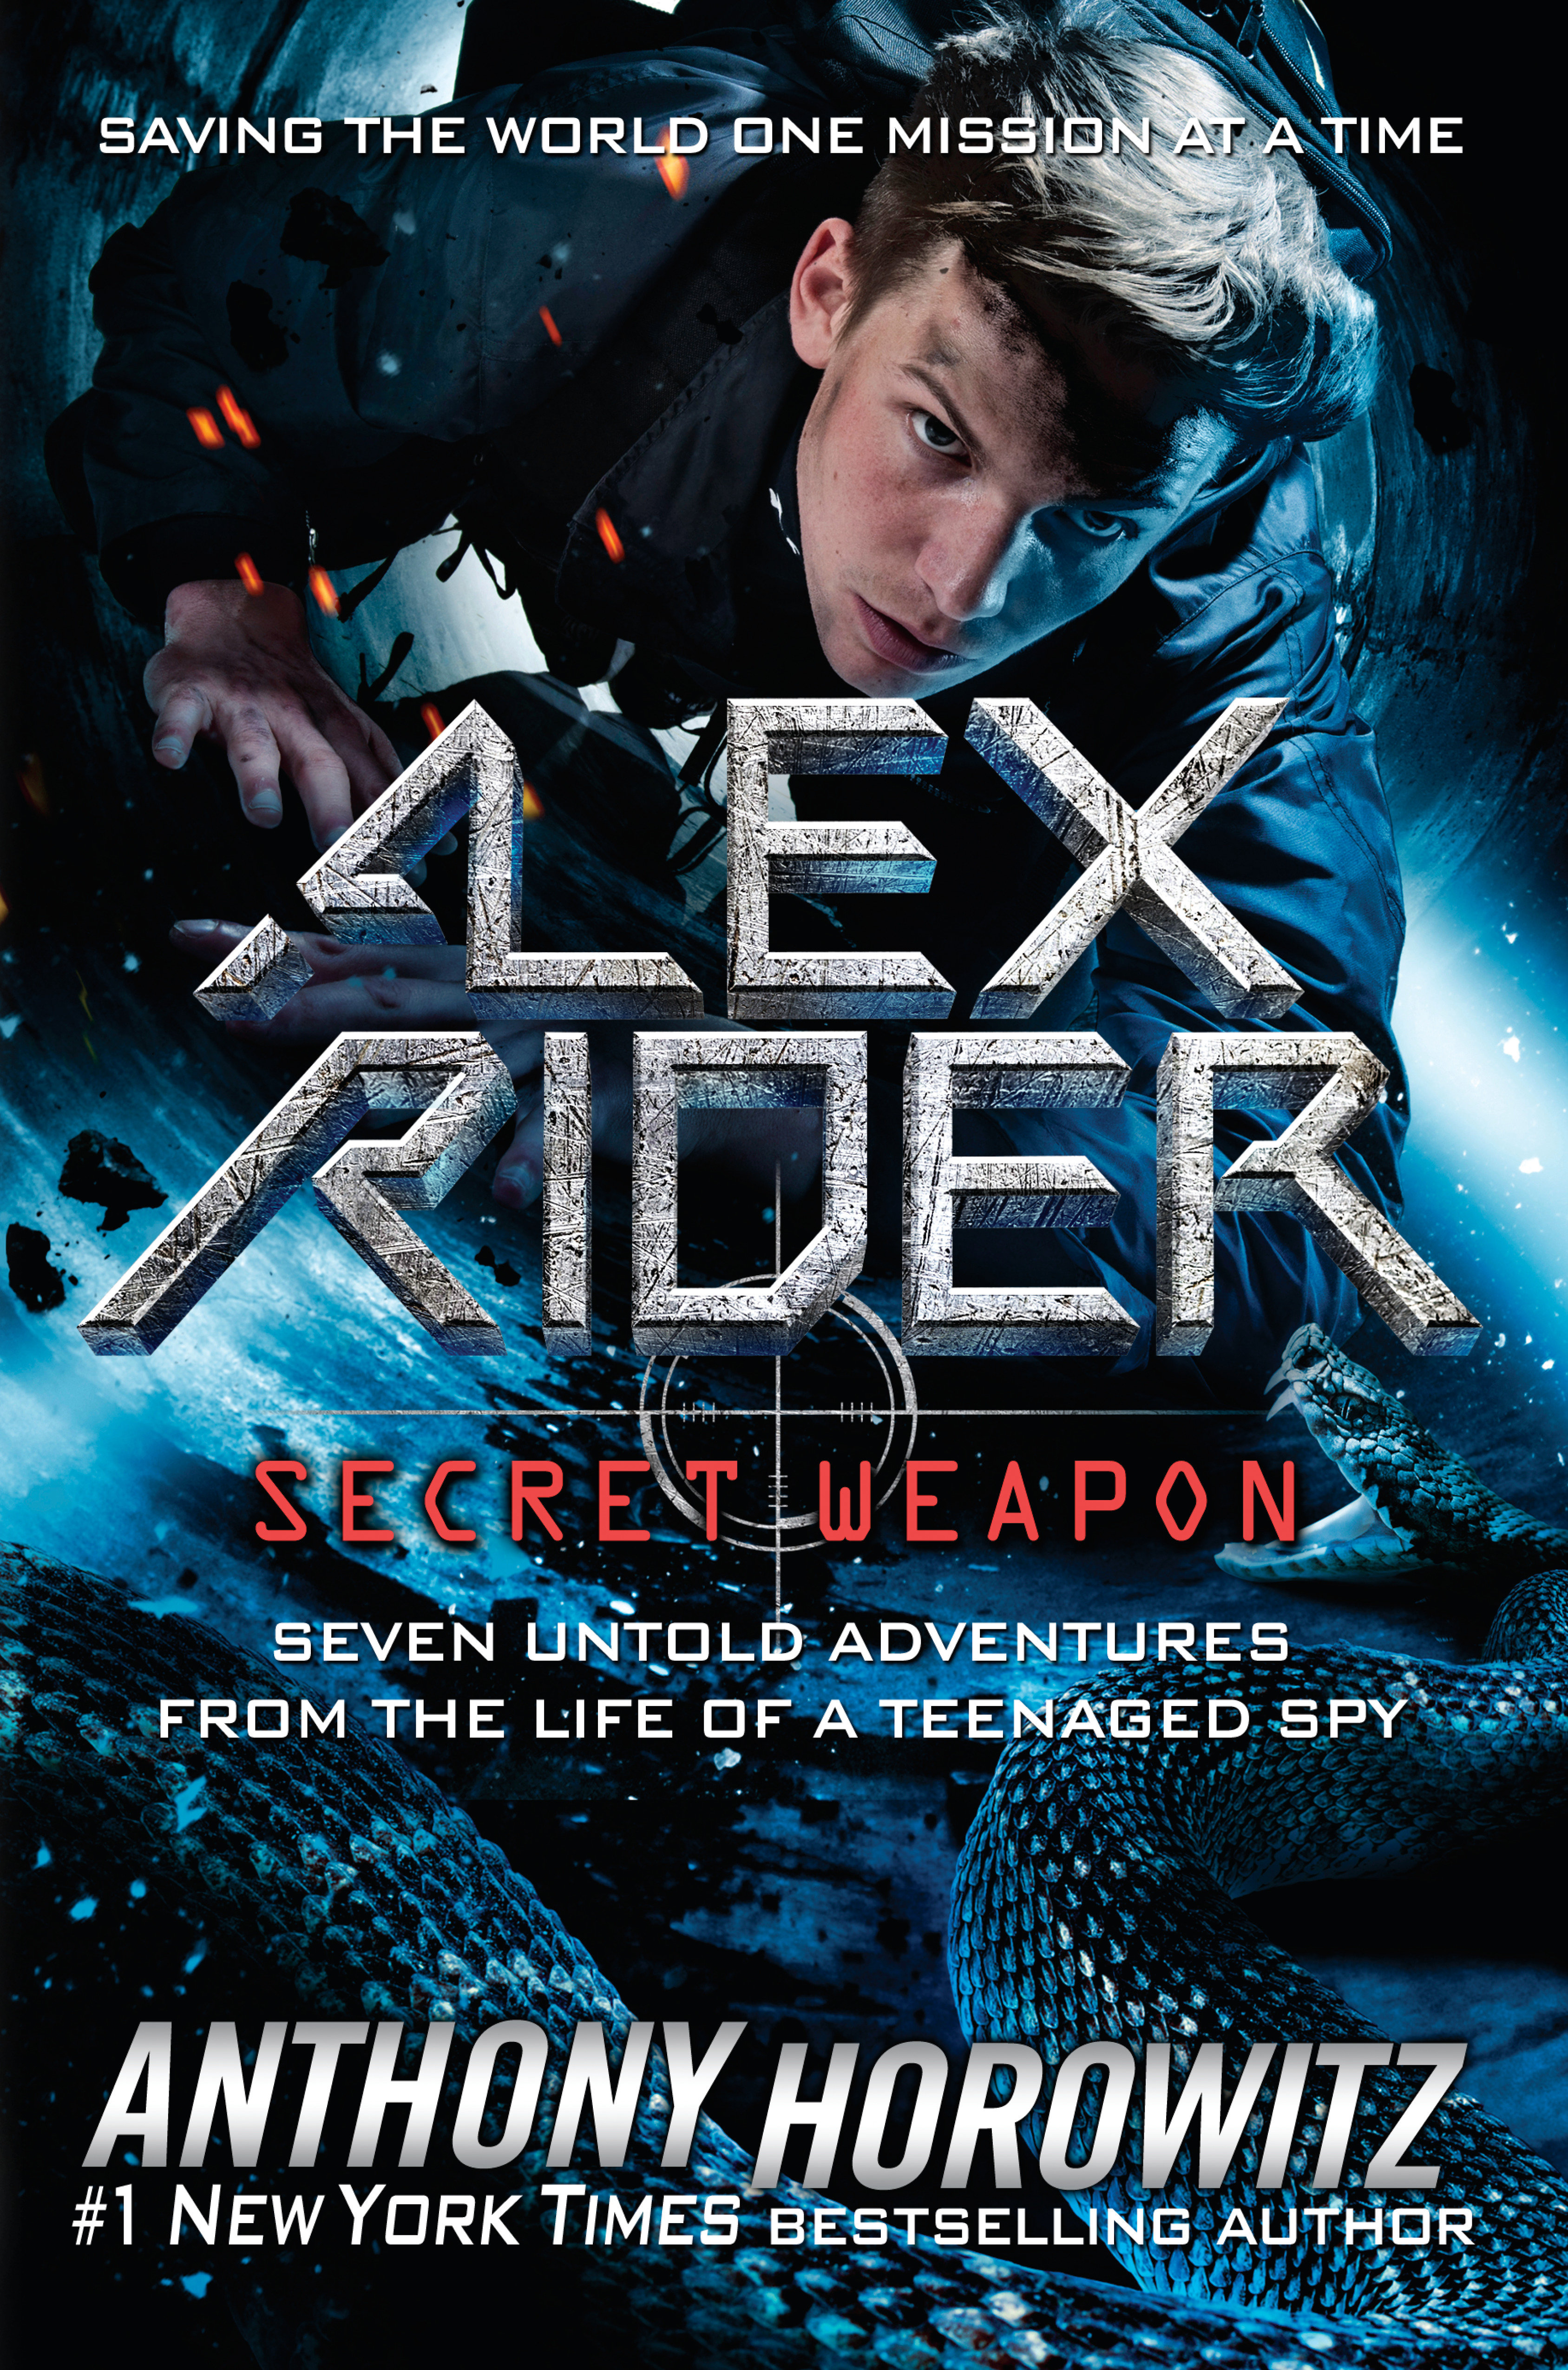 Alex Rider, secret weapon seven untold adventures from the life of a teenaged spy cover image